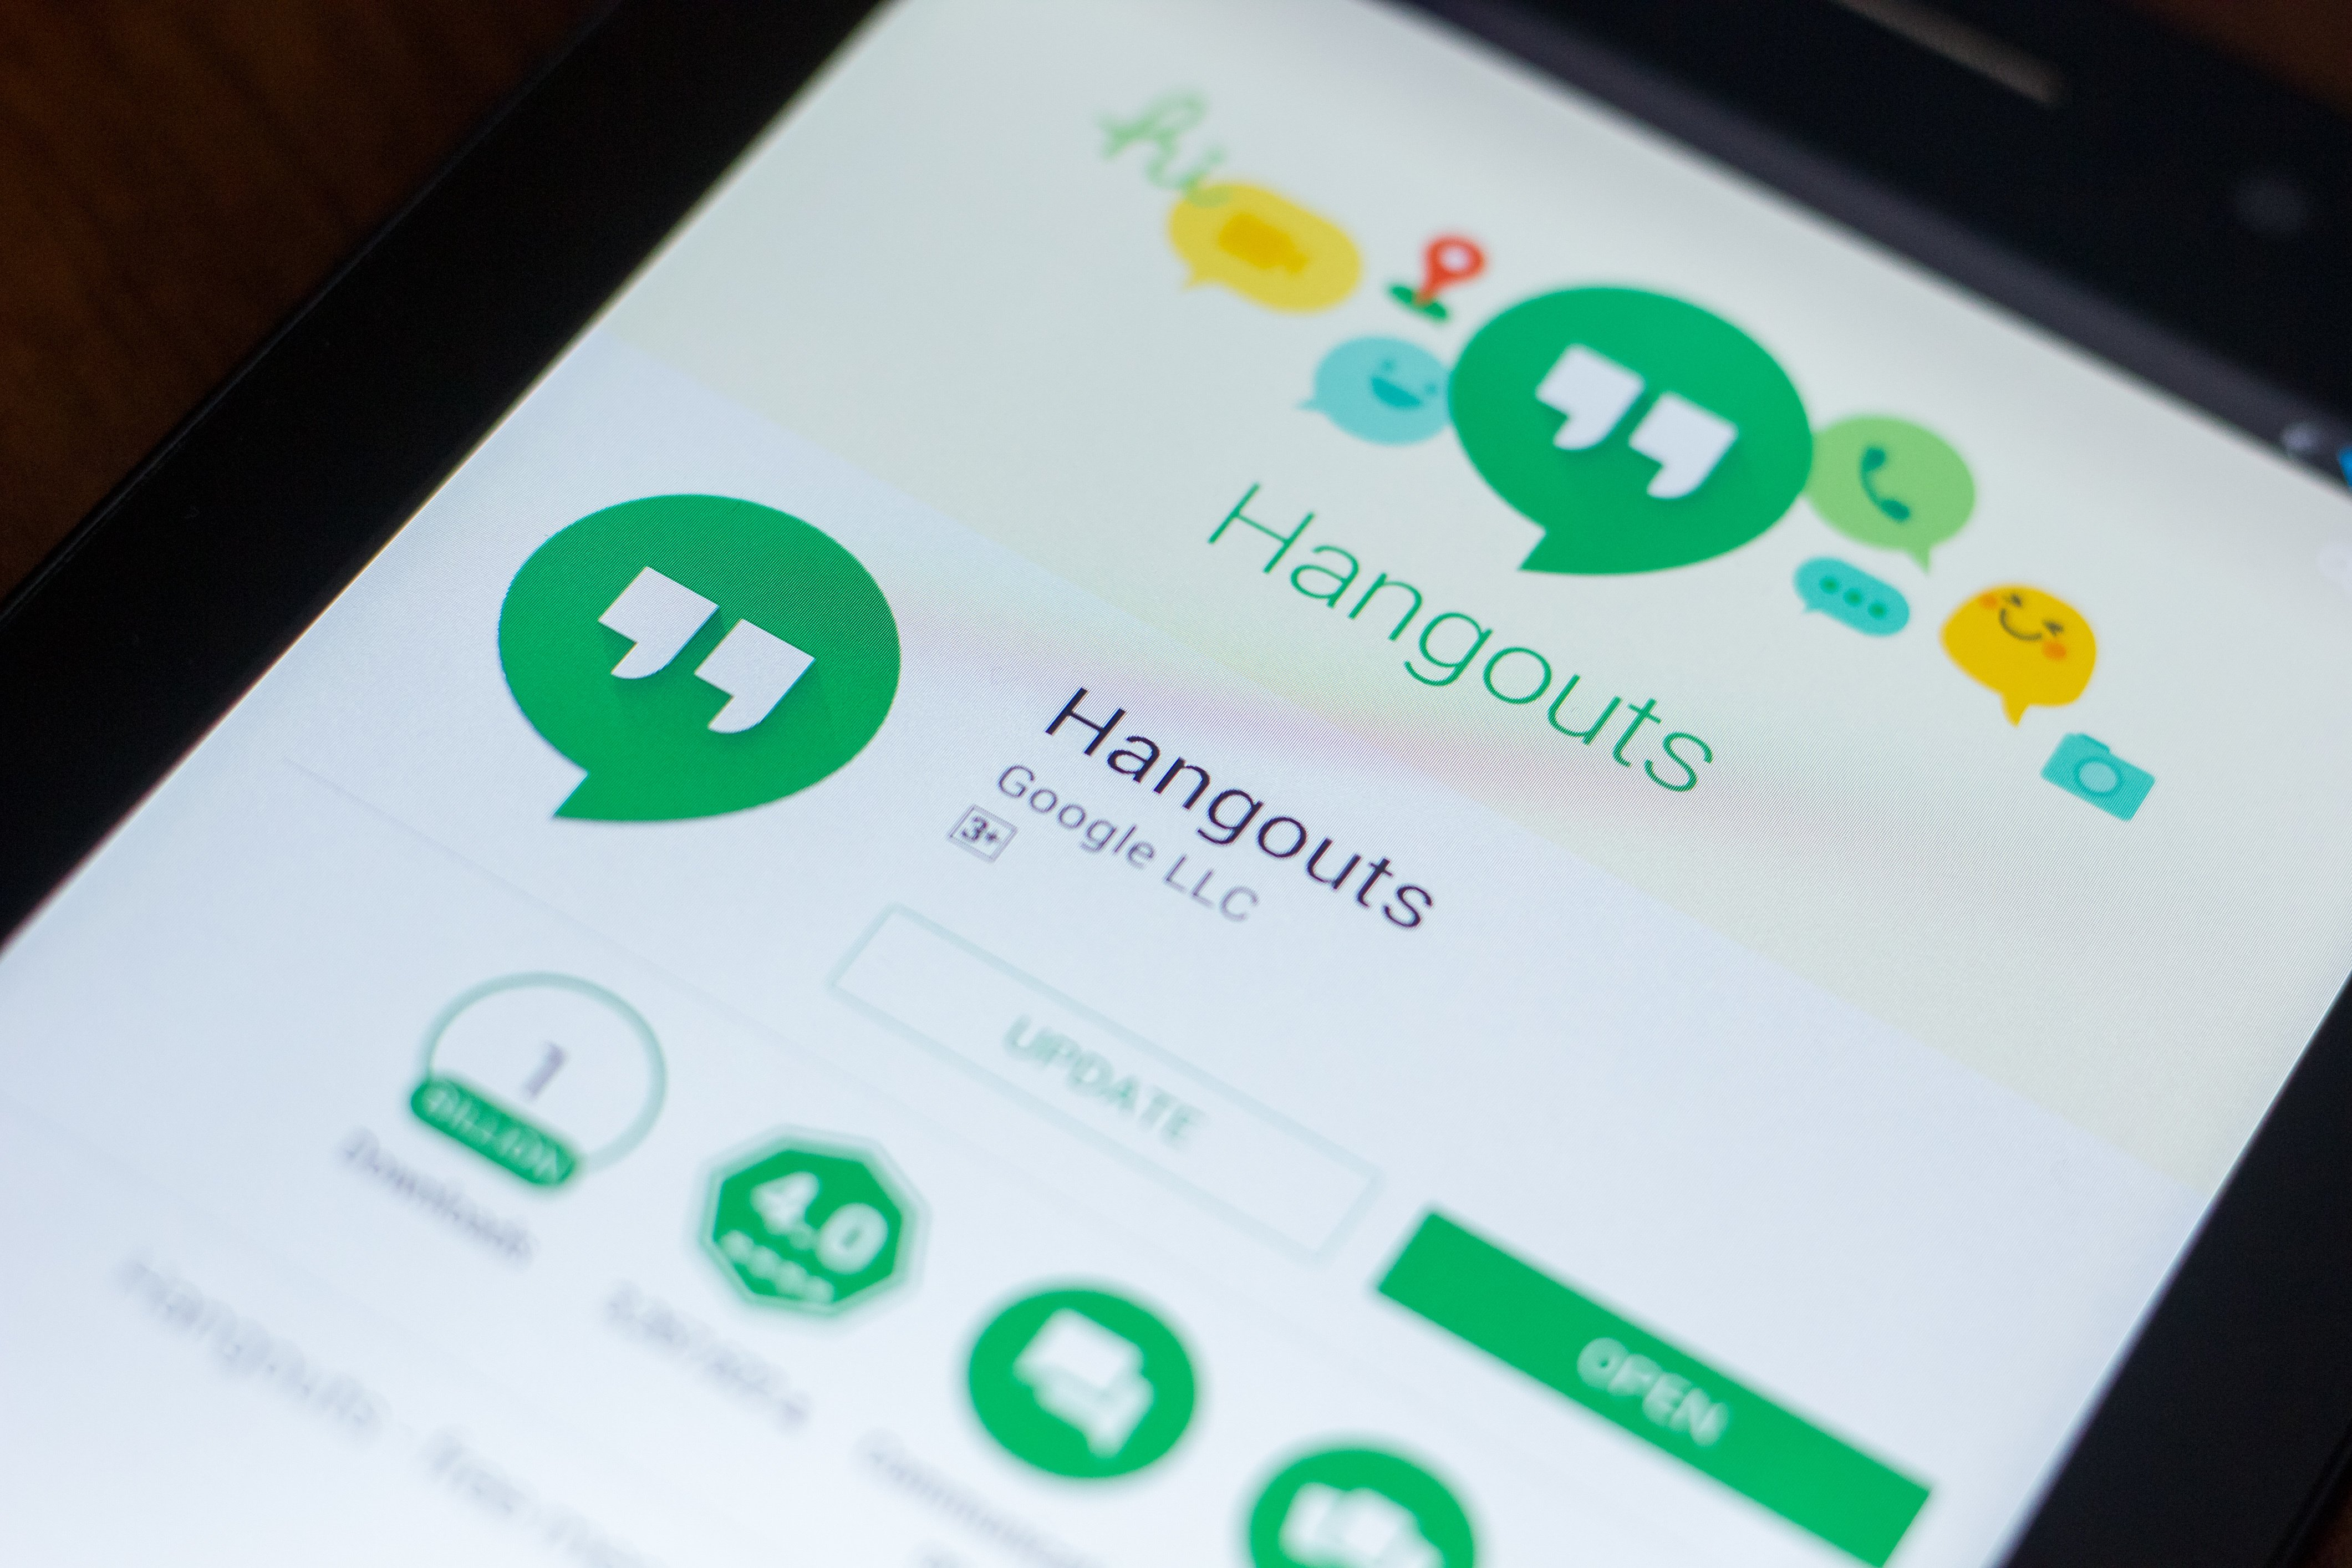 The classic Hangouts gets buried in the Google Graveyard in June. Image credit to: sharafmaksumov - stock.adobe.com.